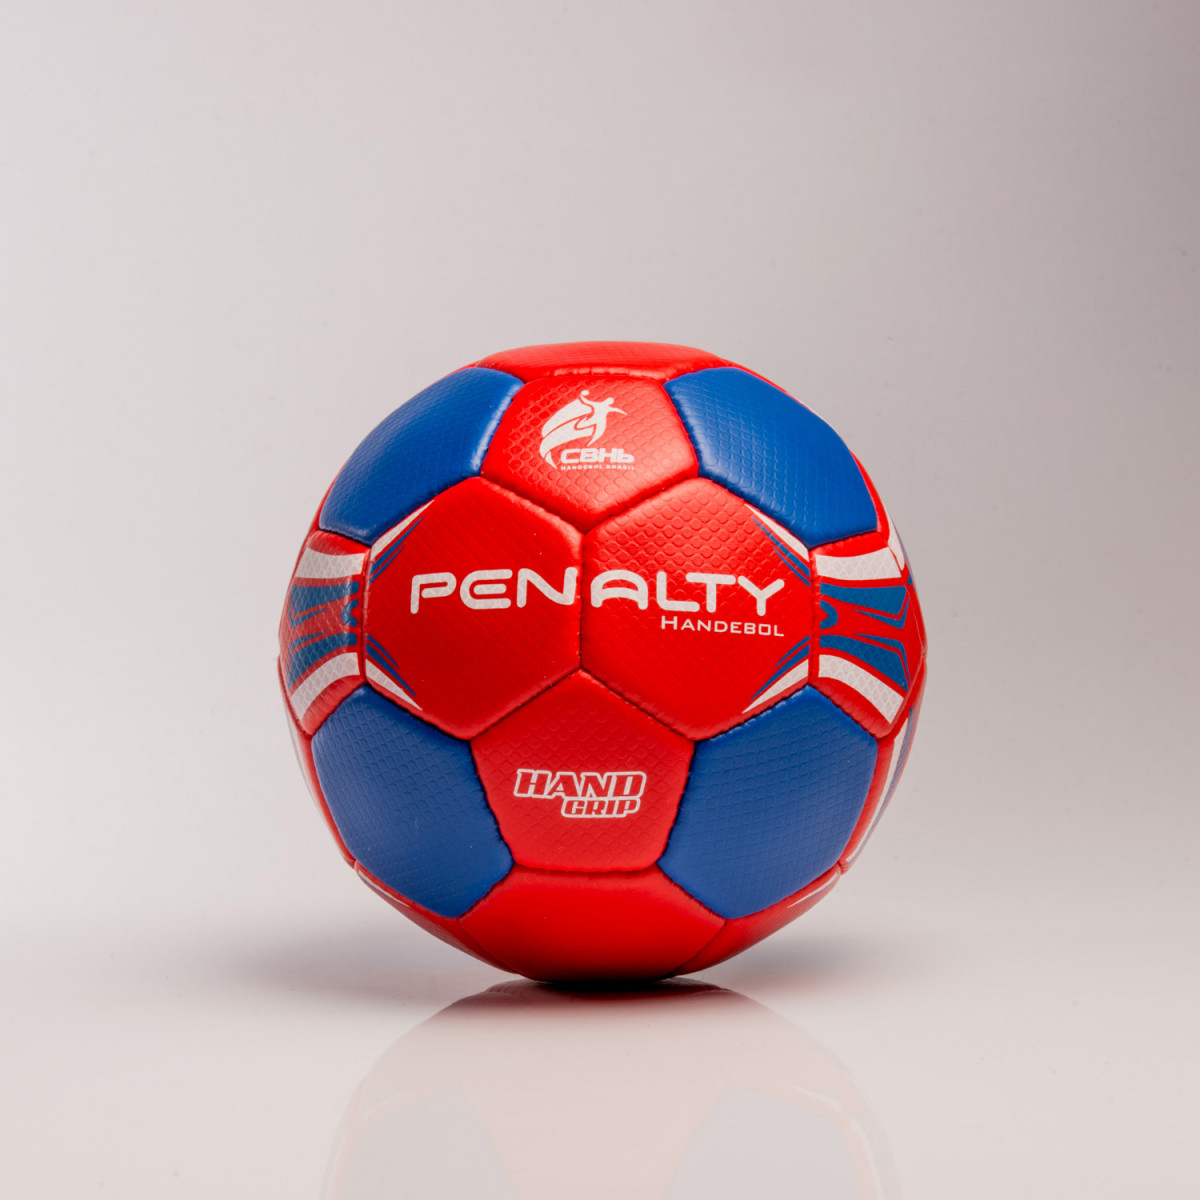 PELOTA PENALTY HANDBALL H3L